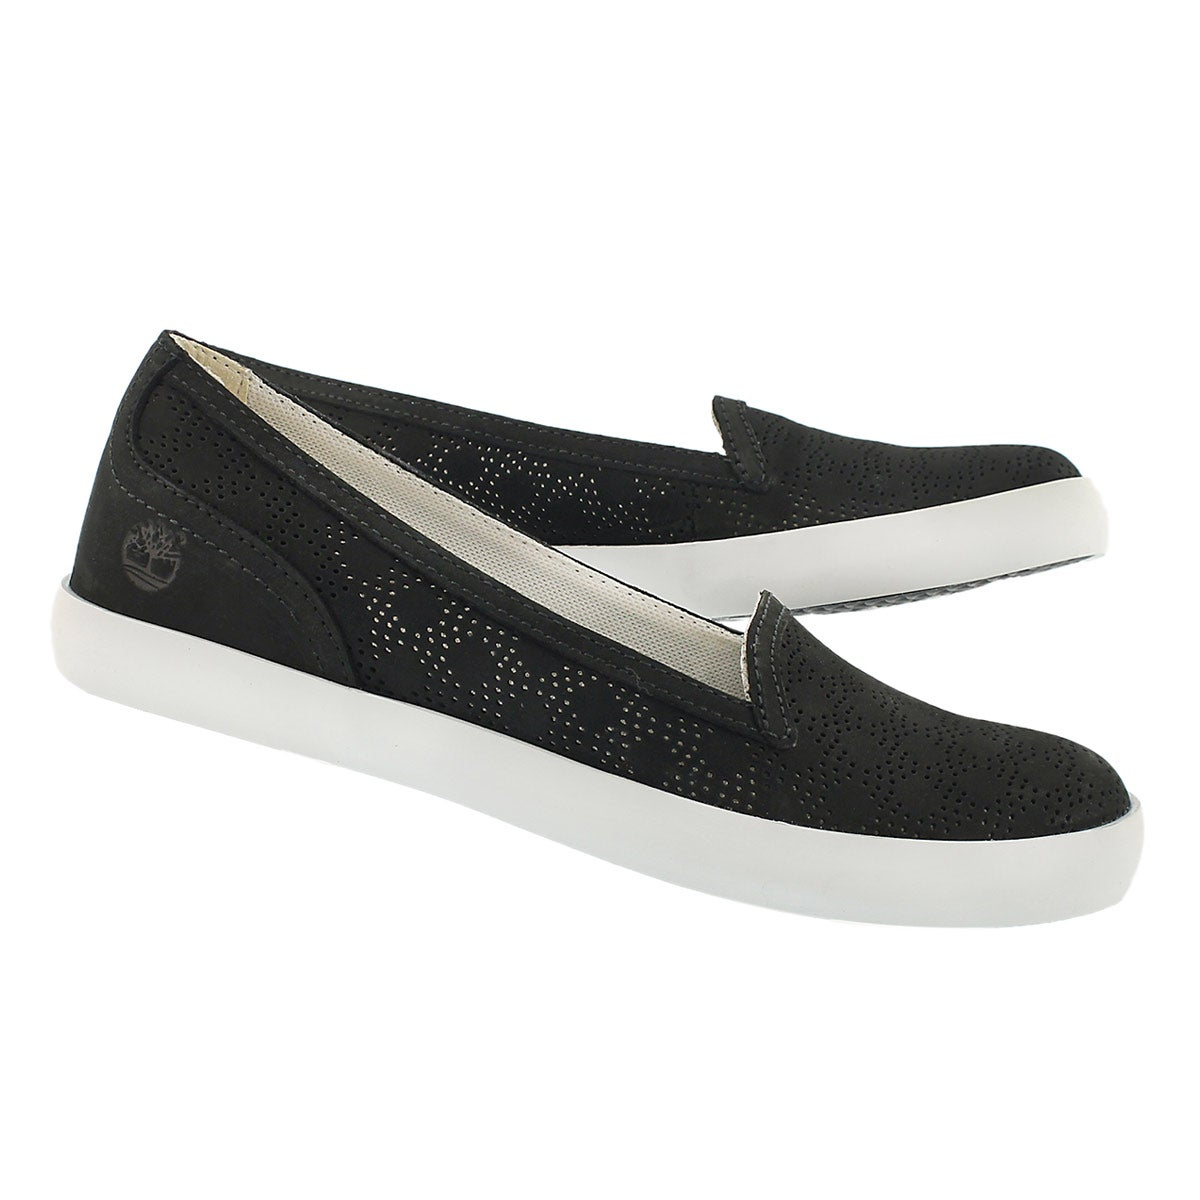 Lds Brattleboro black perferated slip on